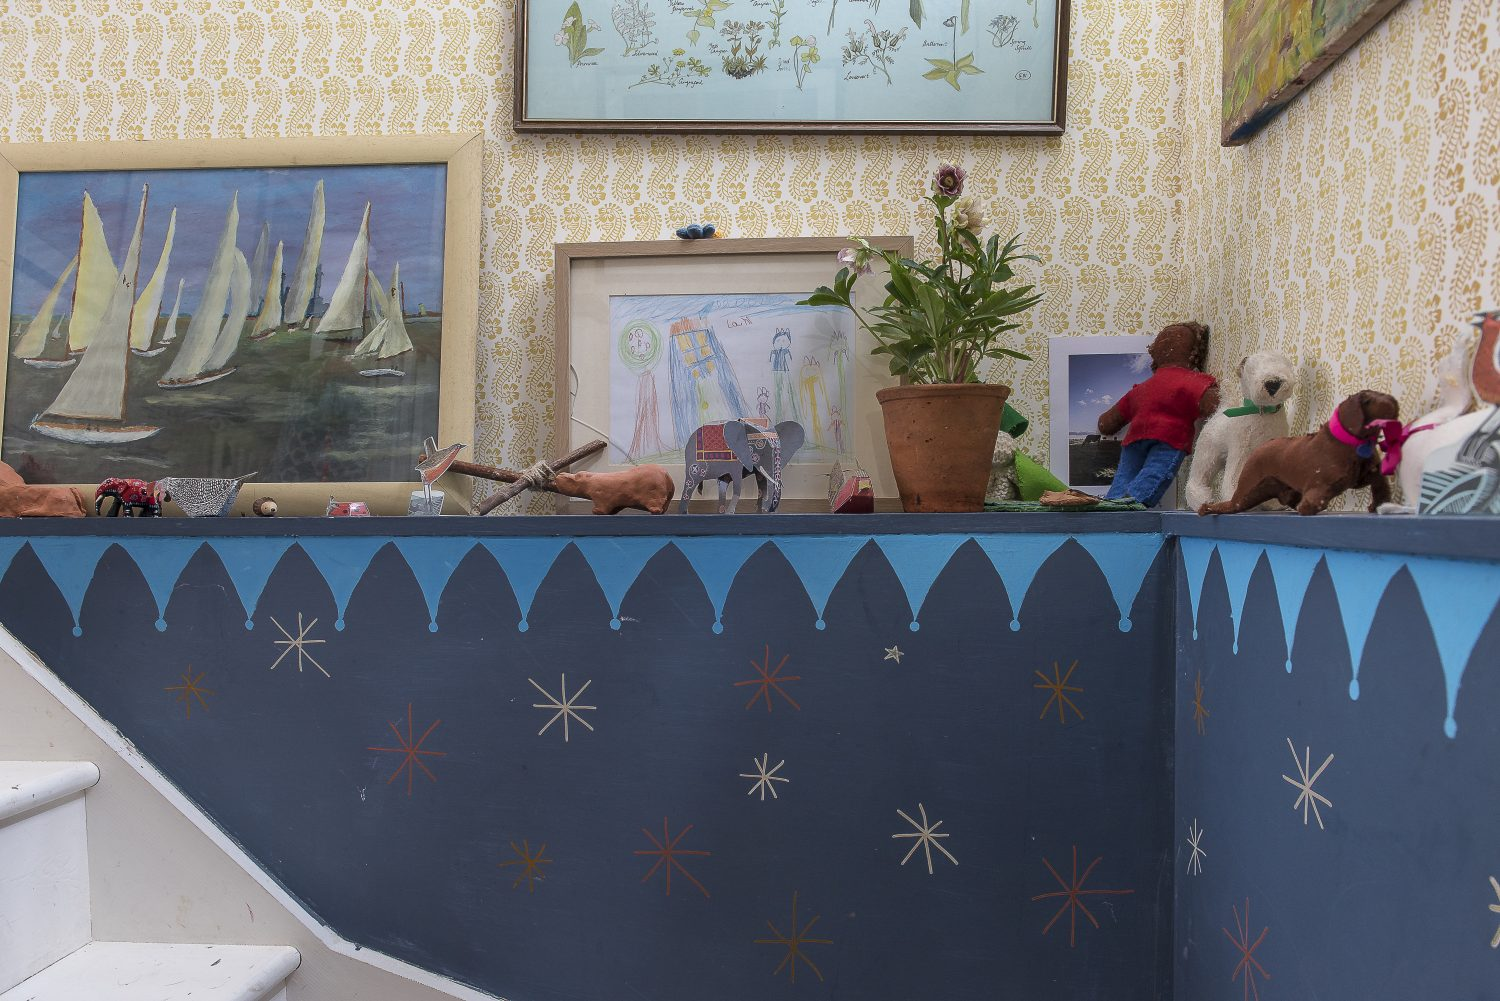 Molly and the children painted the stars on to the blue paint on the staircase walls. The wallpaper is Molly's Lani design